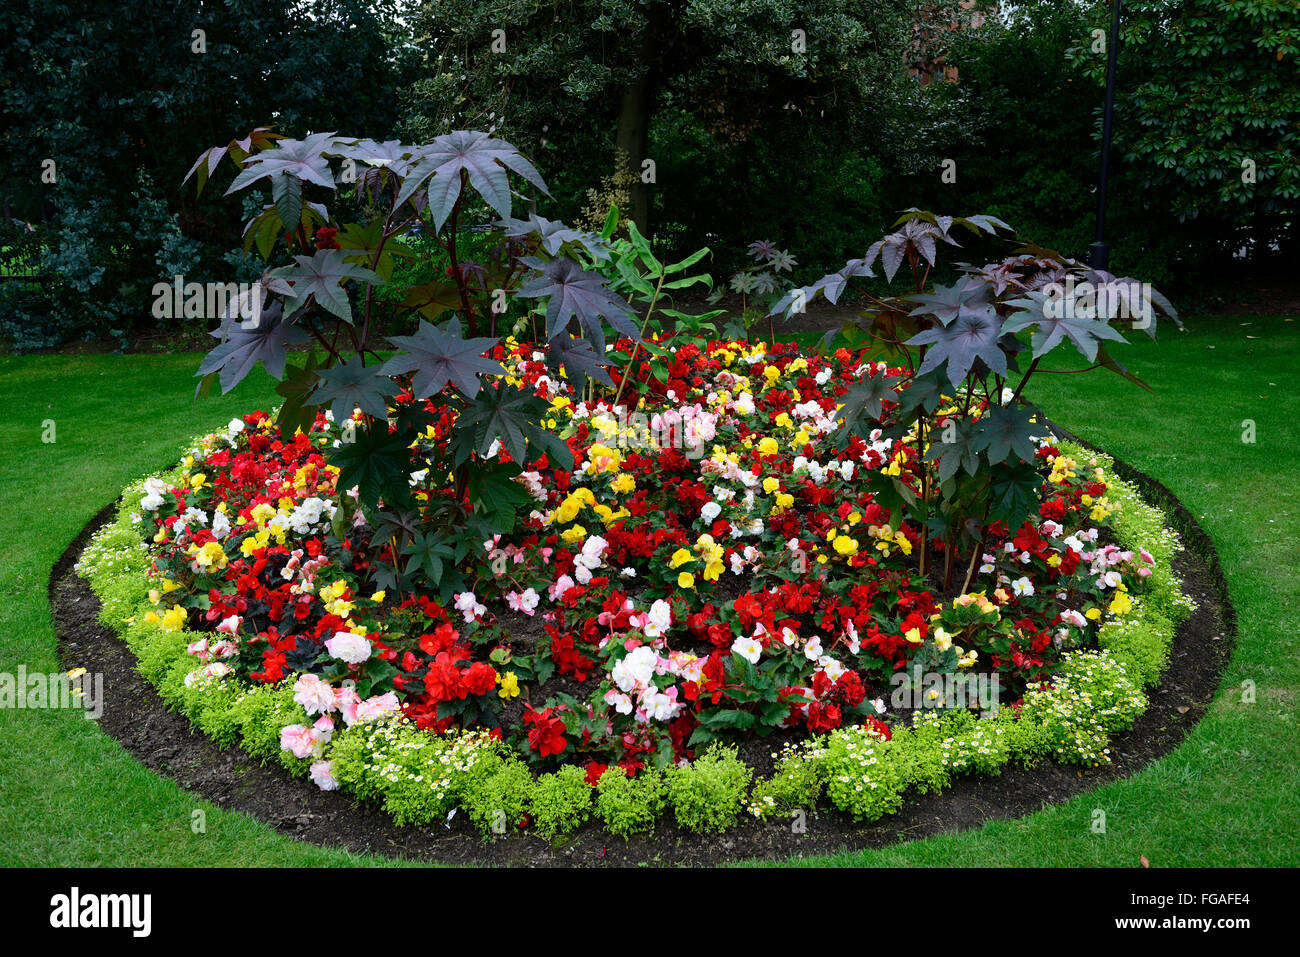 Belfast Botanical Gardens bedding border bed display round circular beds annual annuals colour RM Floral & Belfast Botanical Gardens bedding border bed display round circular ...